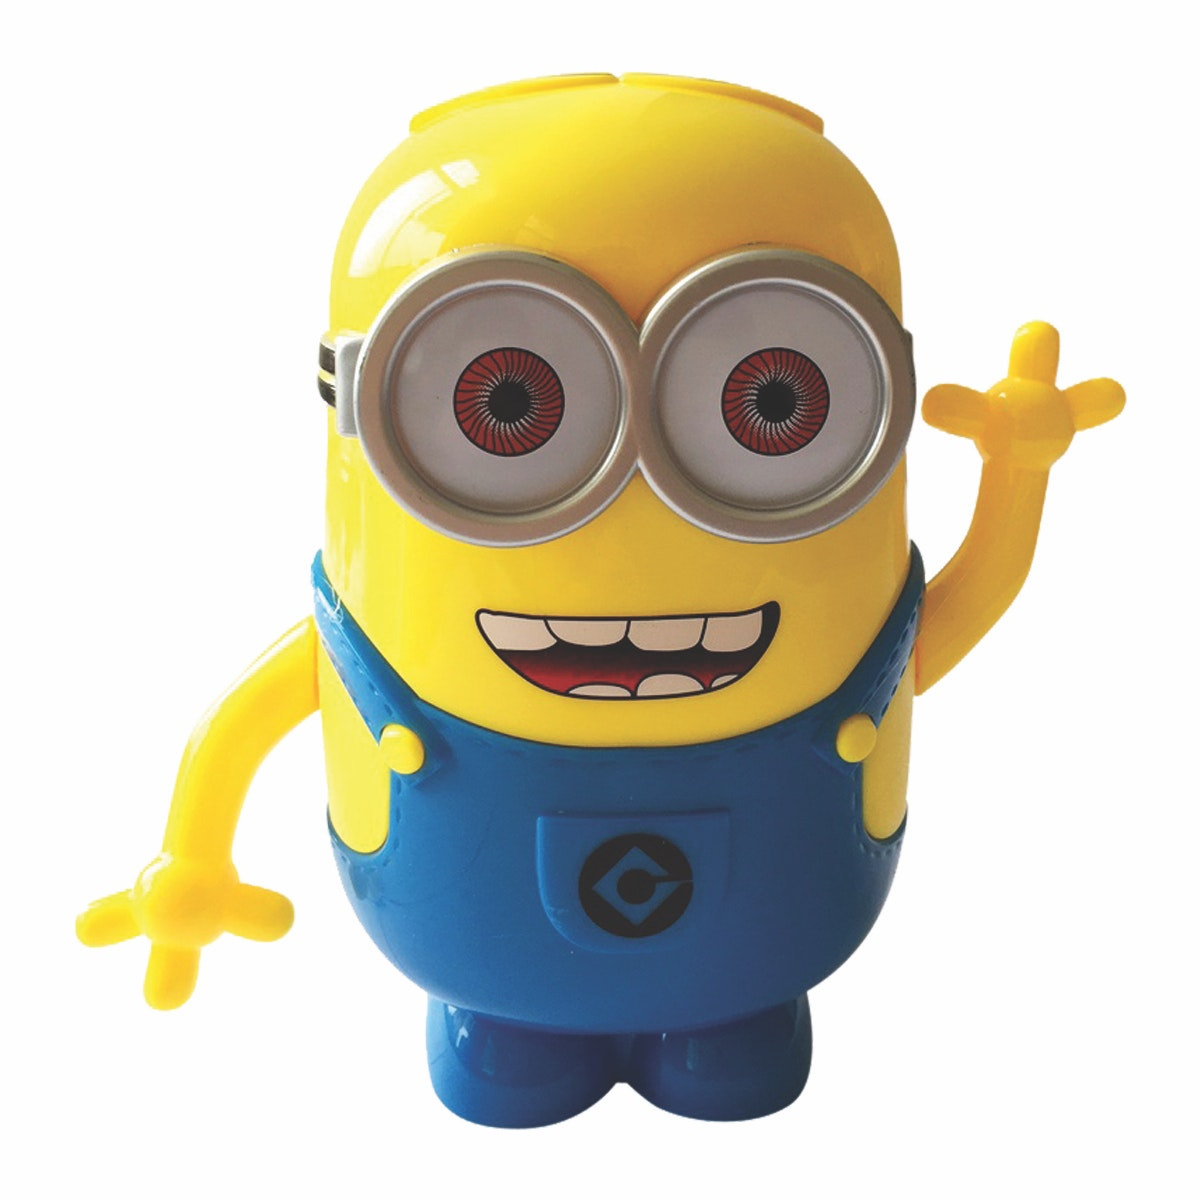 Prissilia Home Living Lampu Minion NO. YW081-1